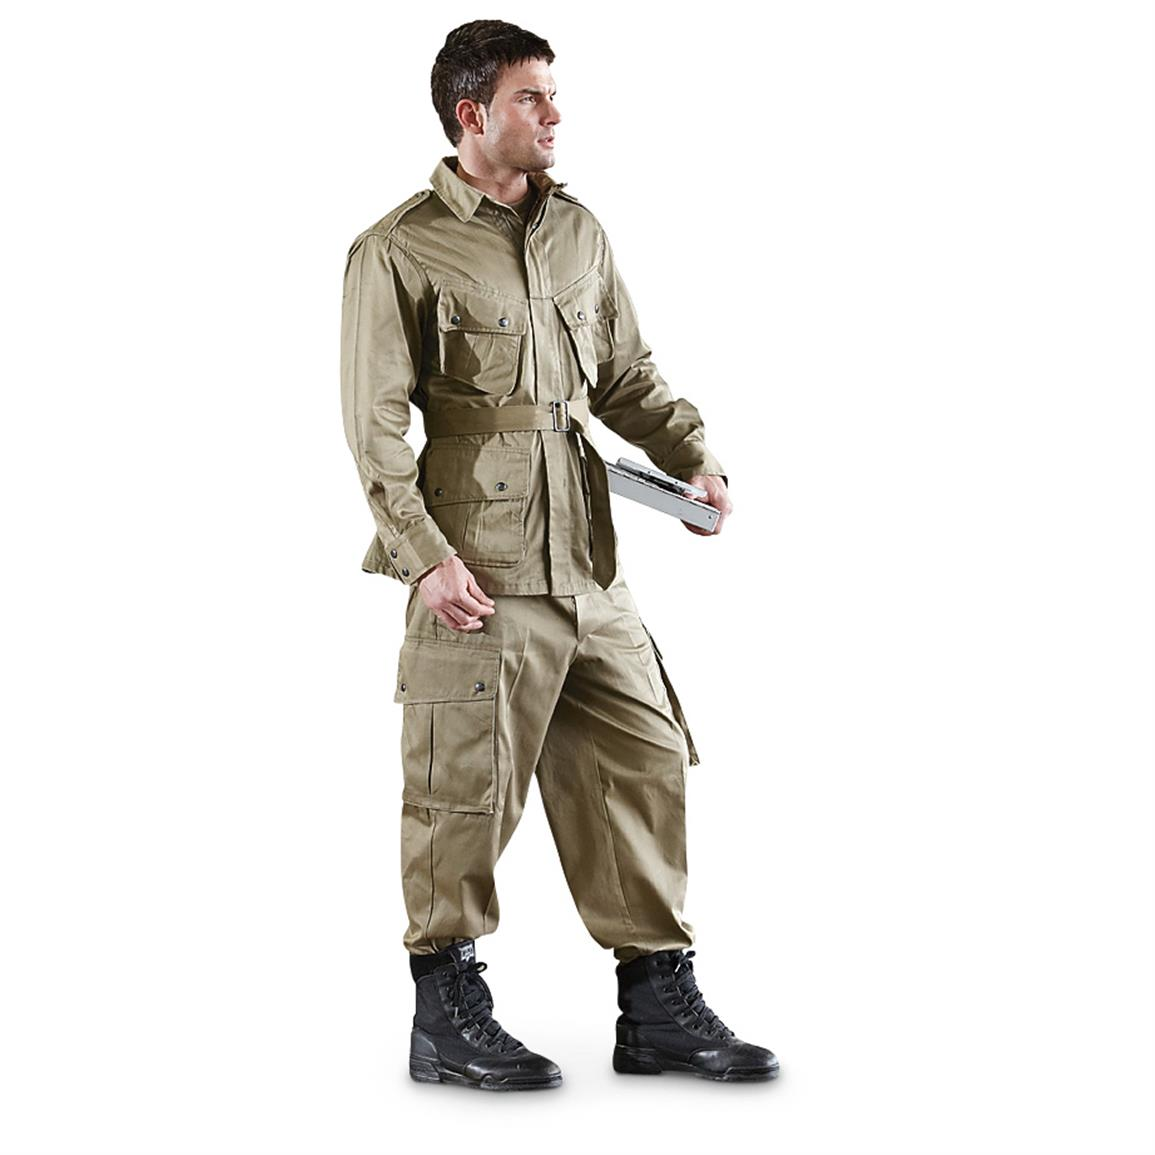 Reproduction M42 Paratrooper Suit